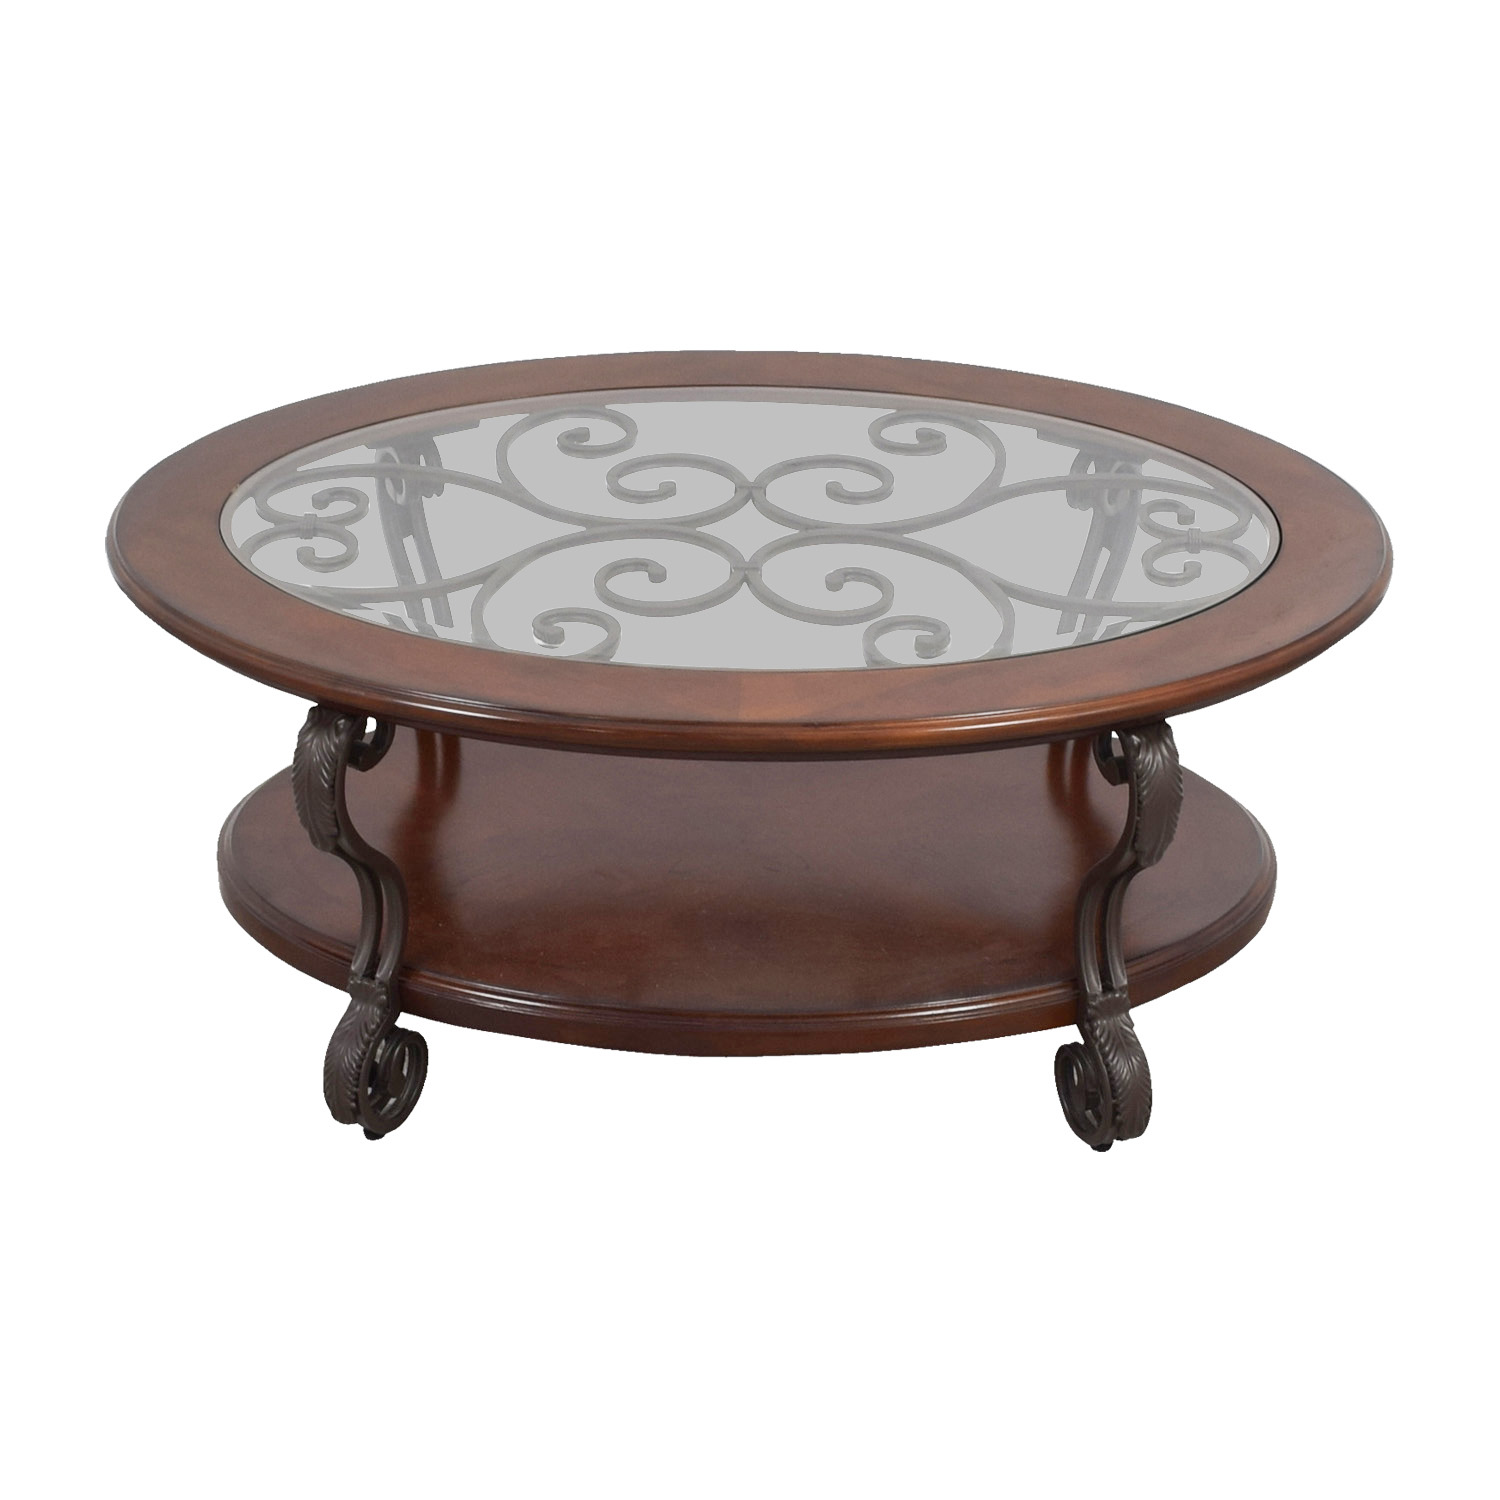 OFF Ashley Furniture Ashley Furniture Oval Glass Wood And - Ashley furniture oval coffee table